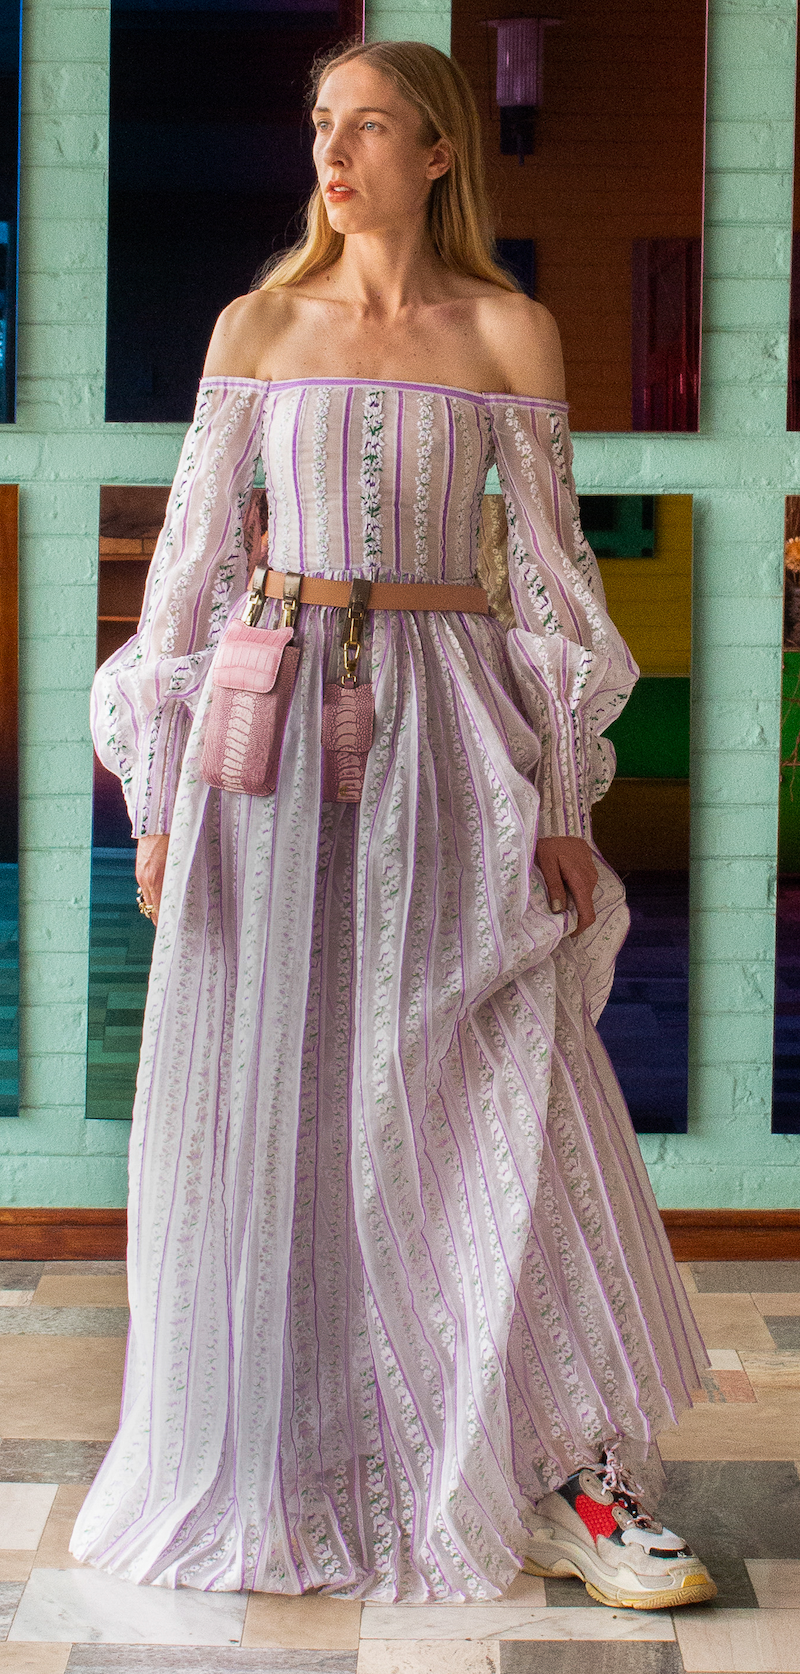 Woman wearing a lilac embroidered off-the-shoulder full length, long sleeved dress